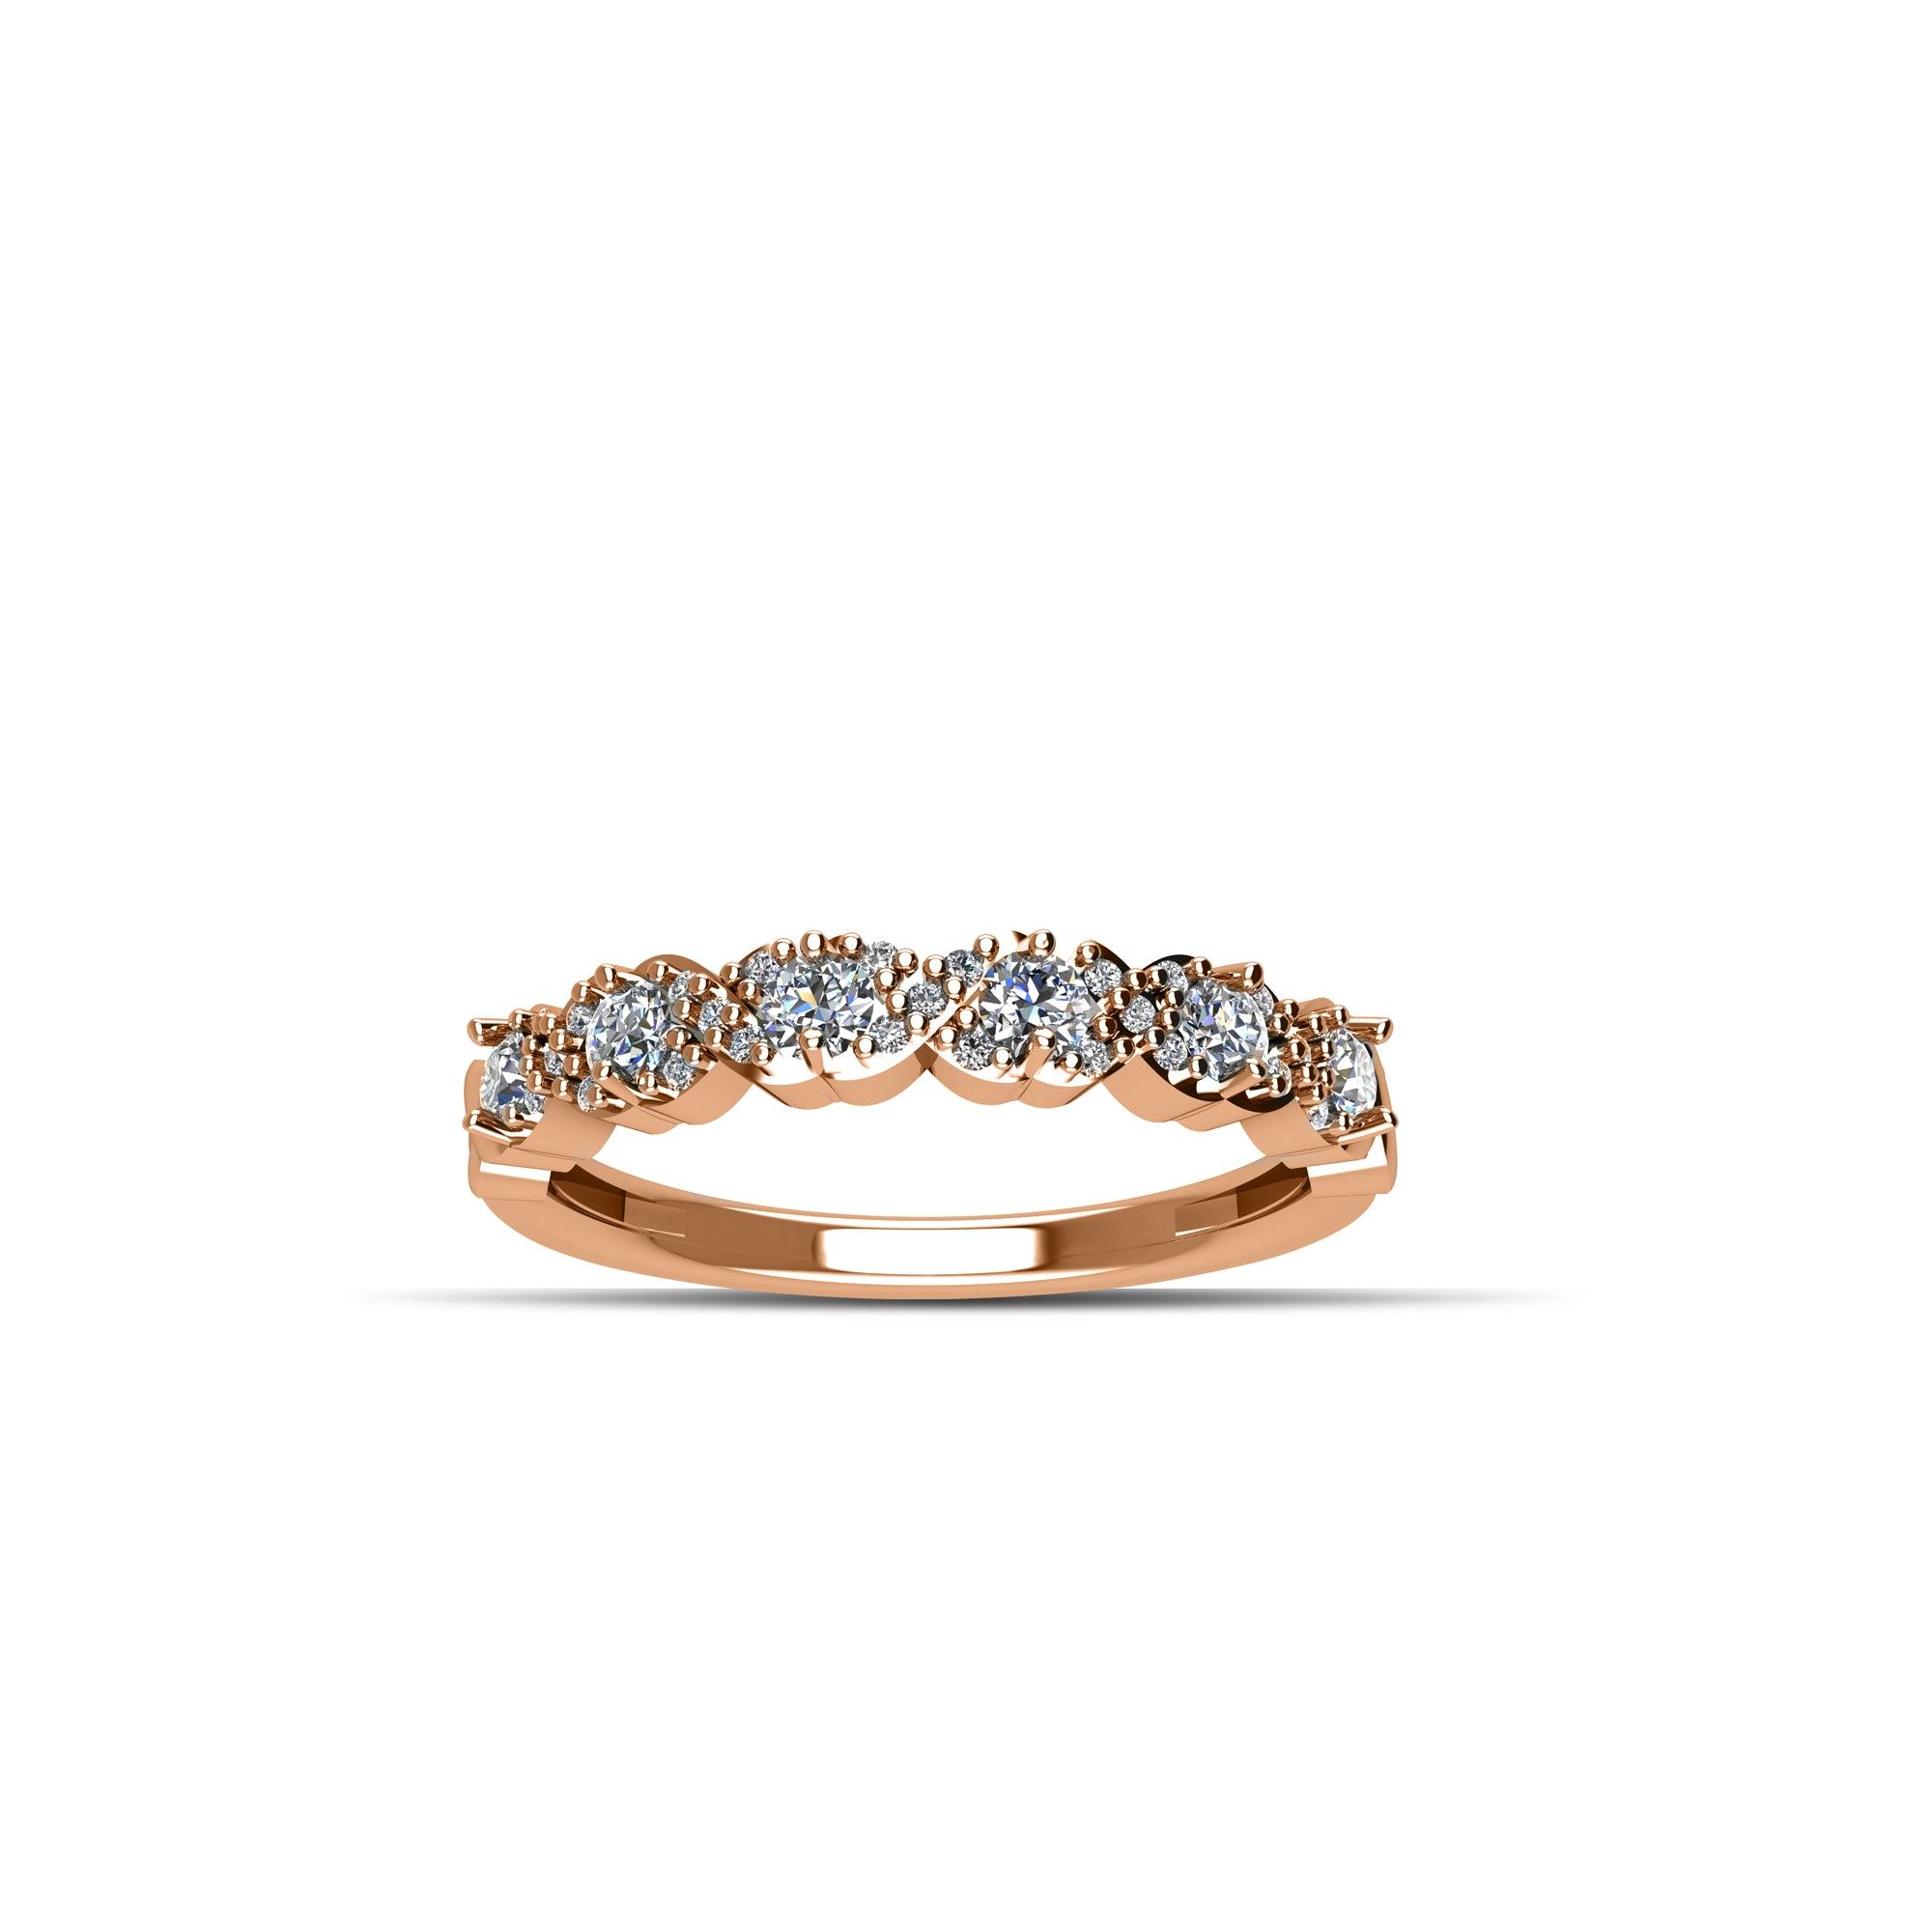 creations gift rose infinity en jewelers bands trice fashion find mother signature guide rings s day gold band